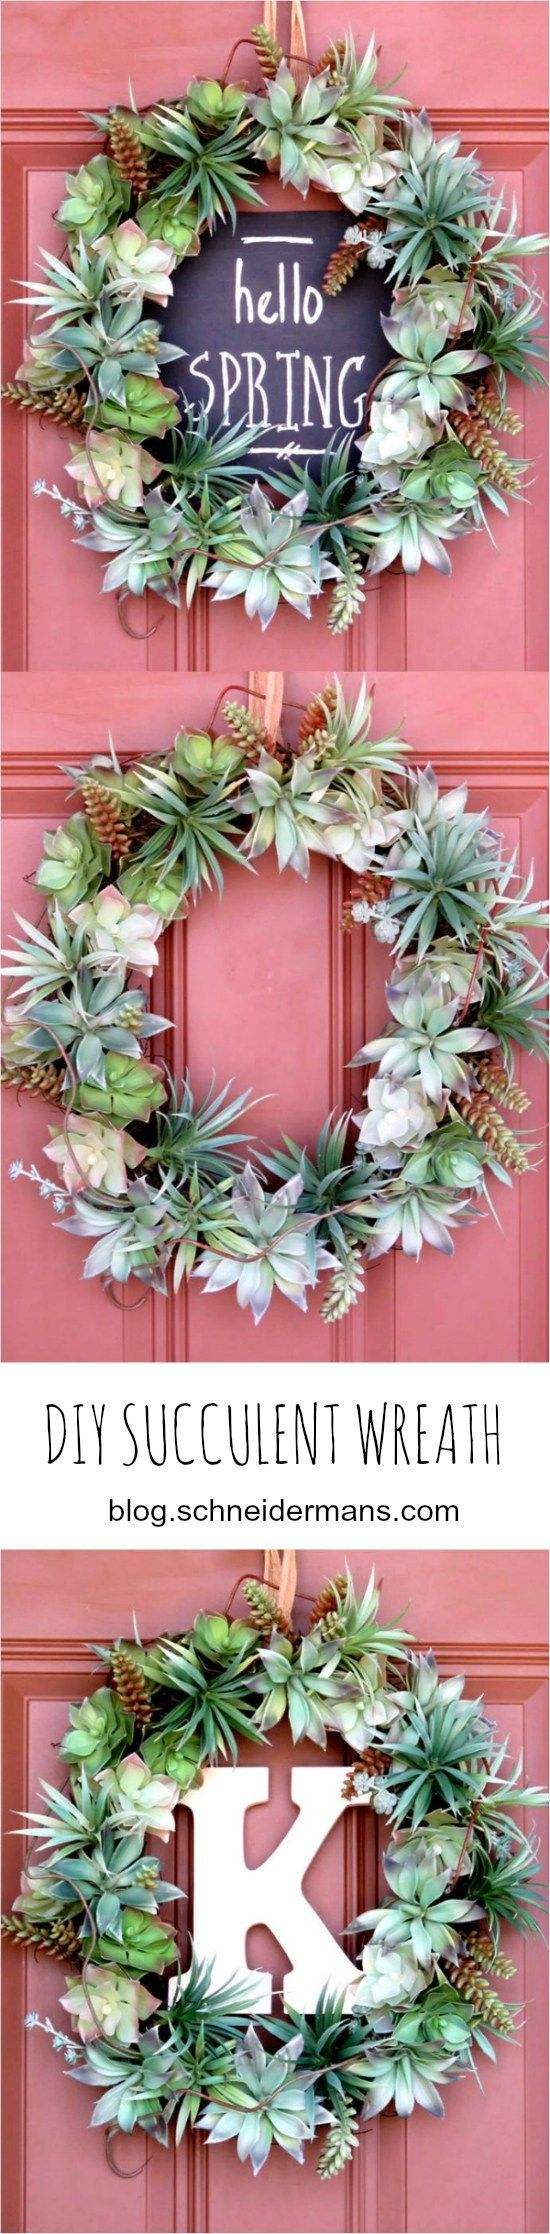 Spring Door Decor Inspiration + A DIY Wreath using faux succulents (3 Ways) via Schneidermans